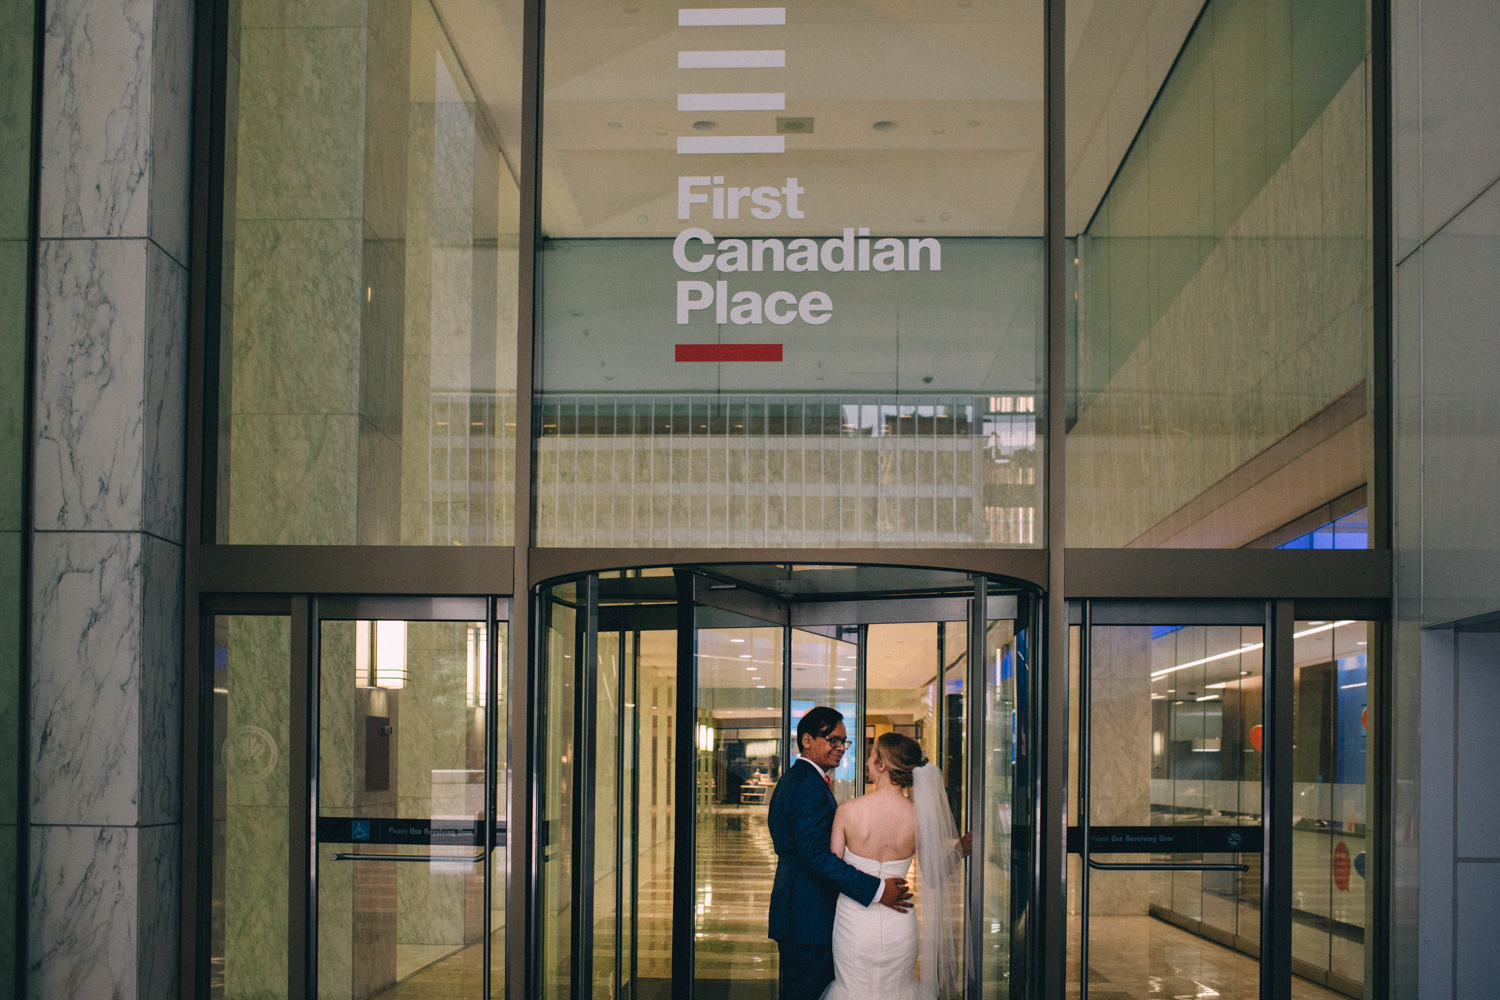 knox-college-toronto-wedding-photos-by-sam-wong-of-artanis-collective_46